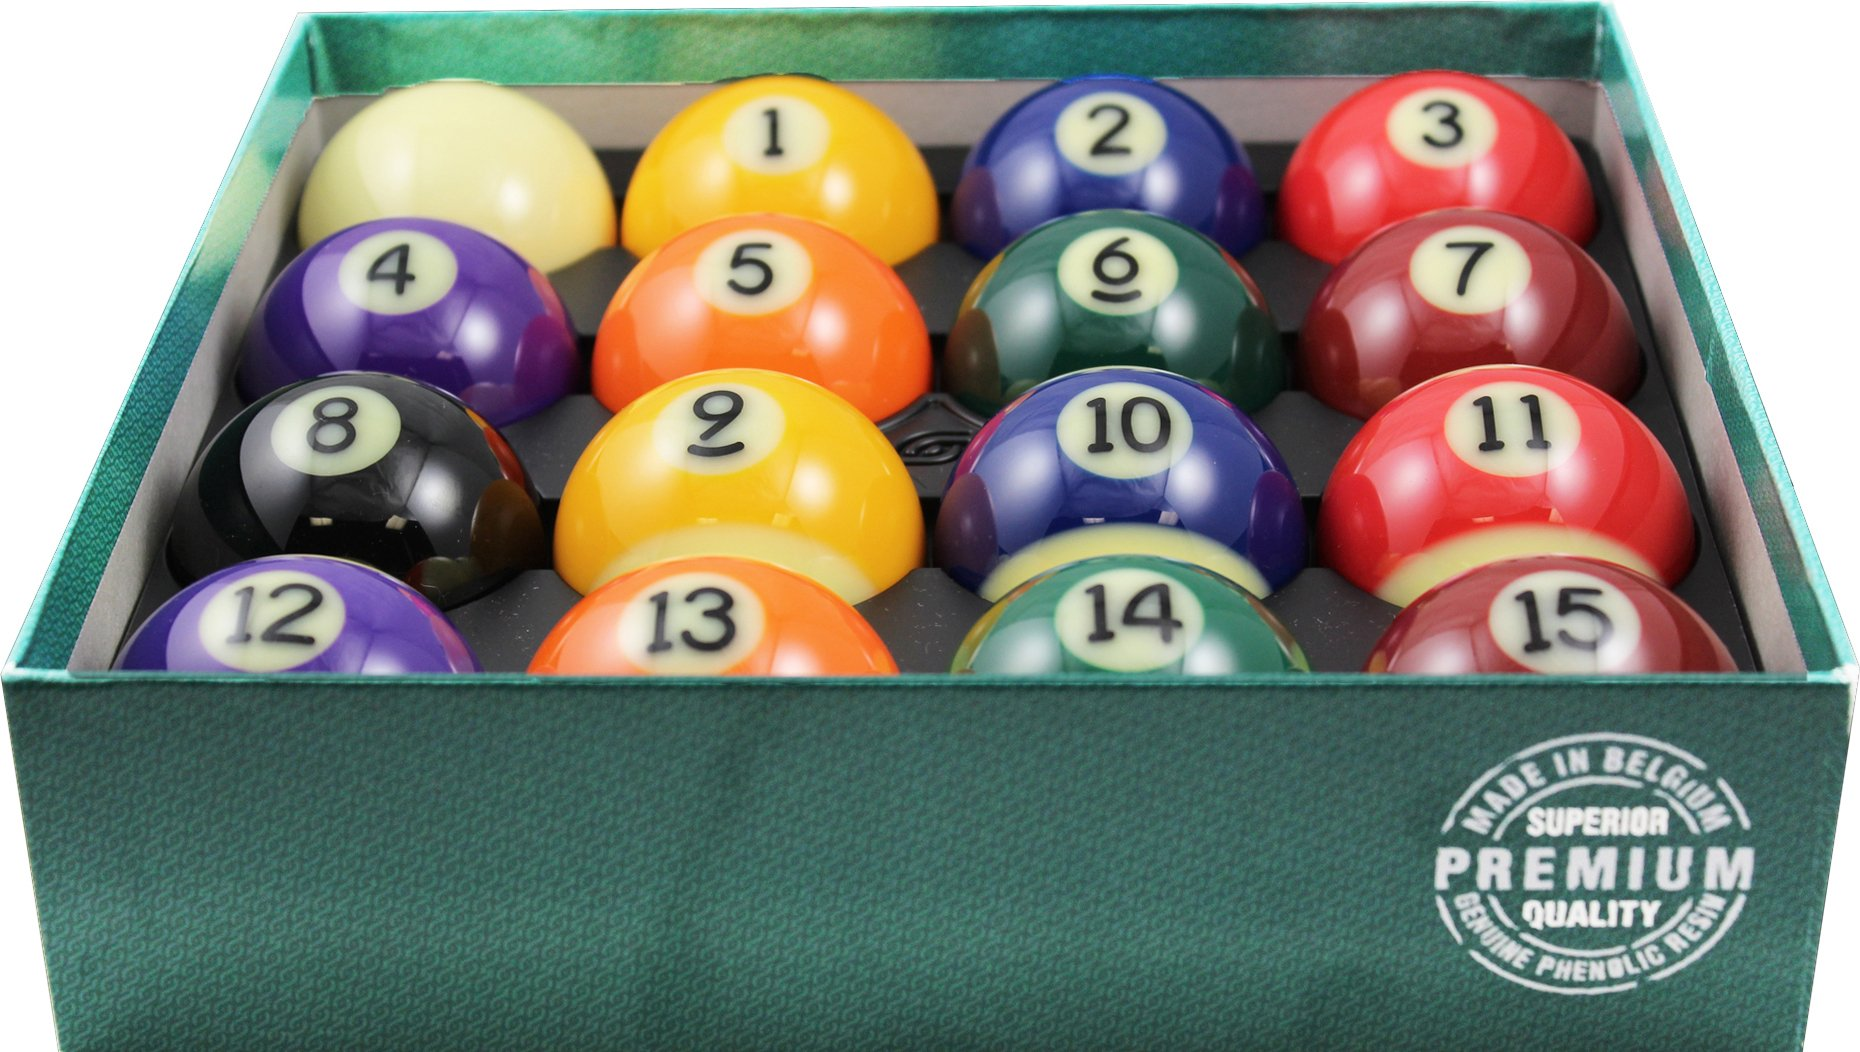 Aramith 2-1/4'' Regulation Size Premium Billiard/Pool Balls, Complete 16 Ball Set by Aramith